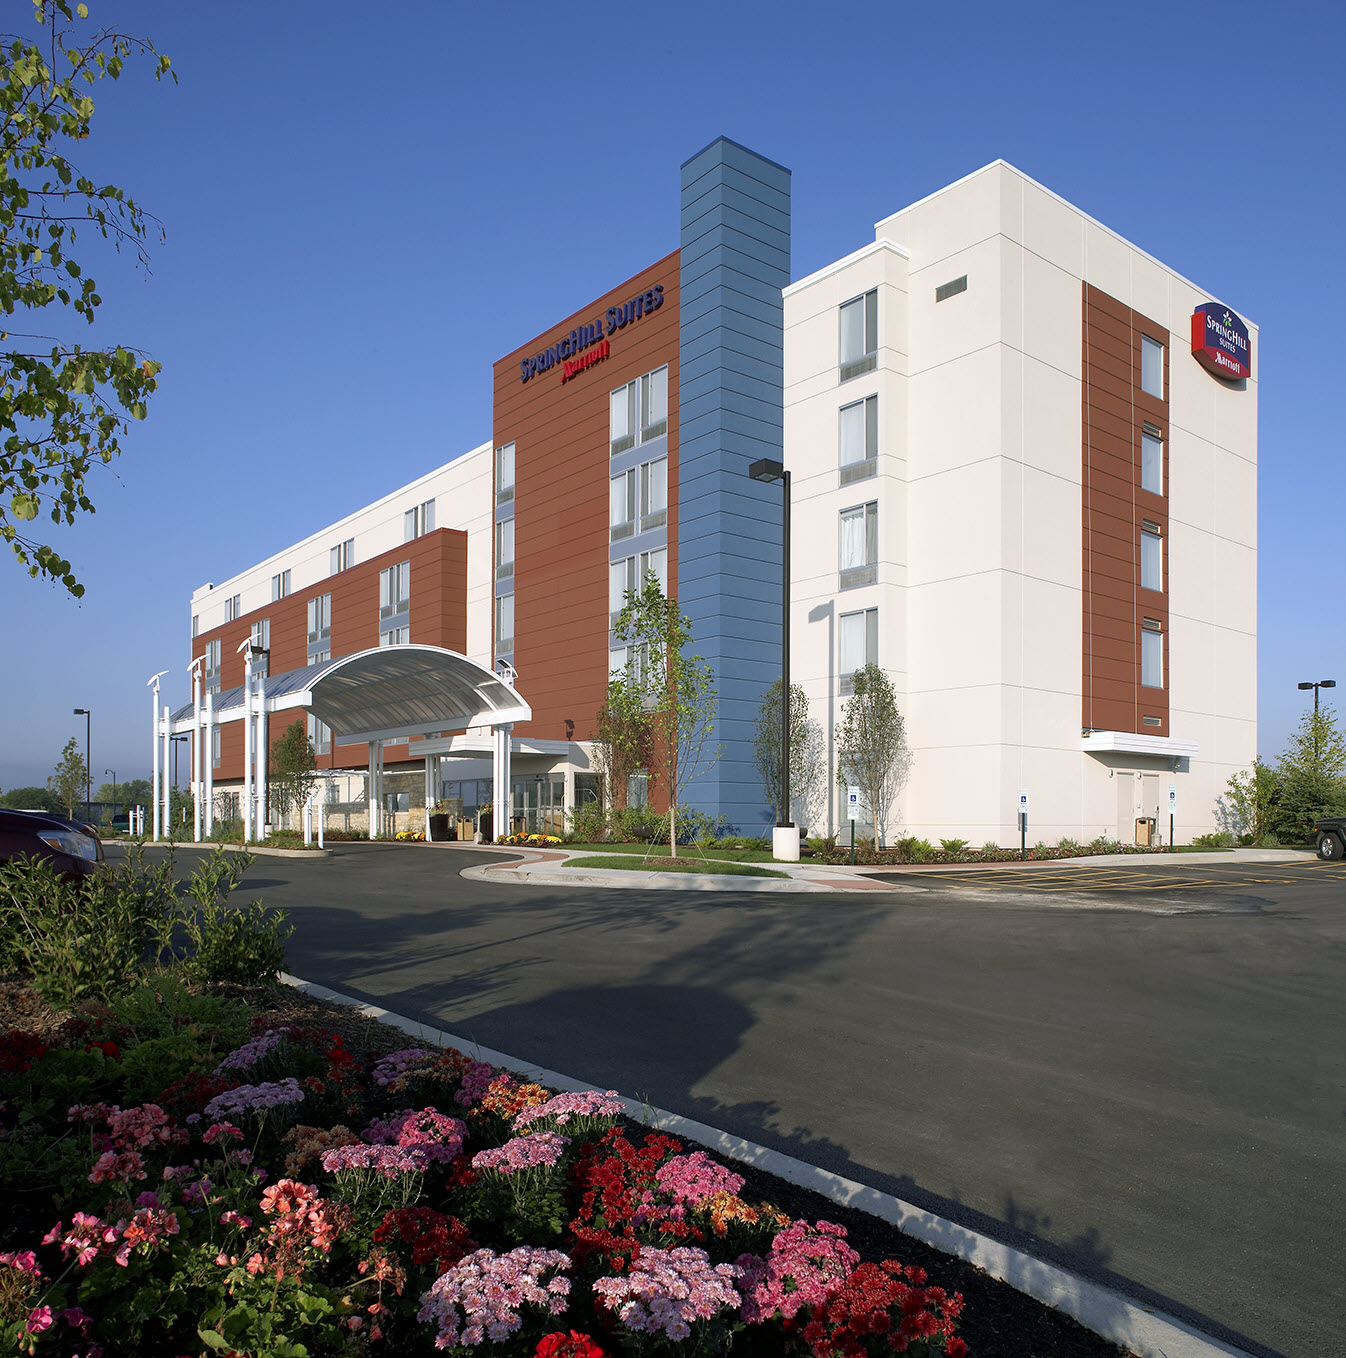 SpringHill Suites by Marriott Chicago Waukegan/Gurnee image 0